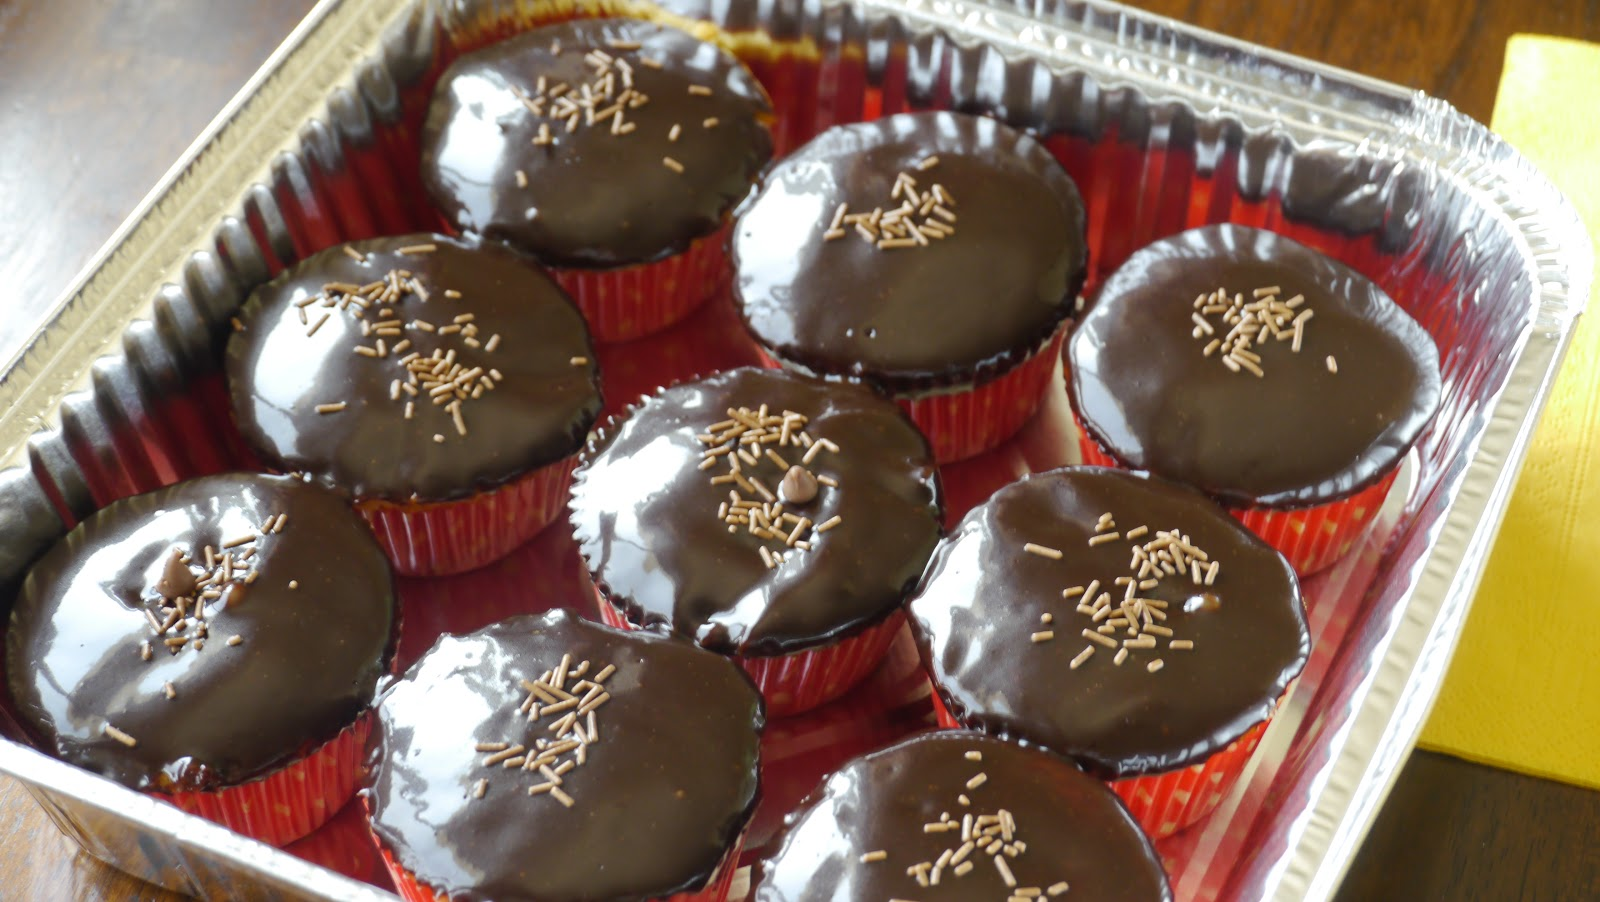 My little cake factory: Vanilla cupcakes with chocolate frosting